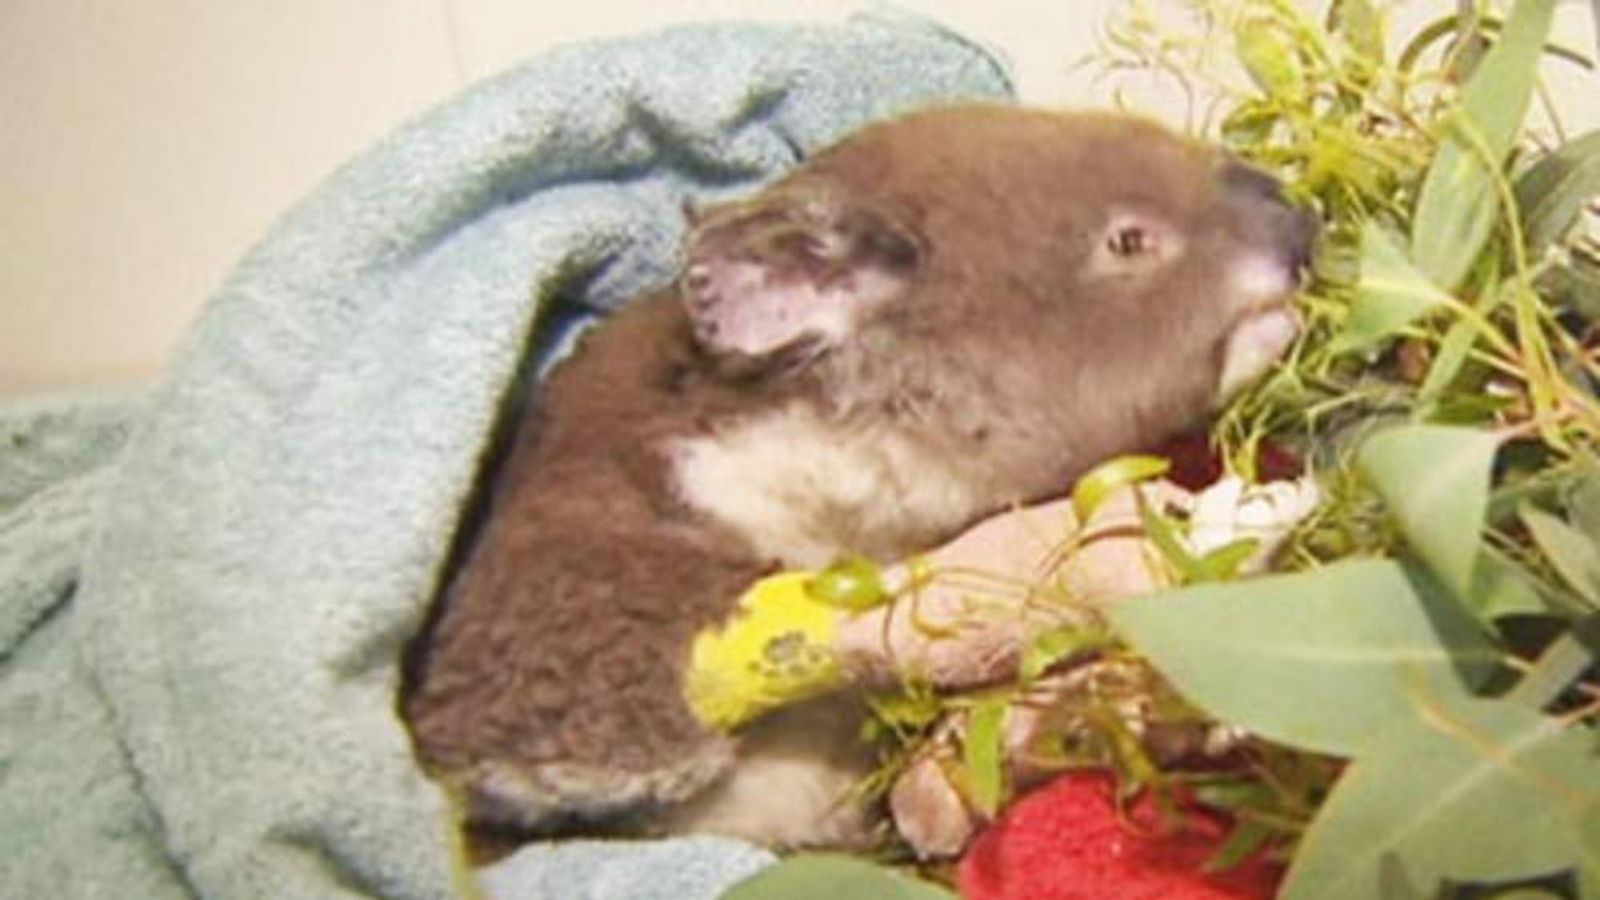 An injured koala receives treatment after being rescued from a bushfire in South Australia.